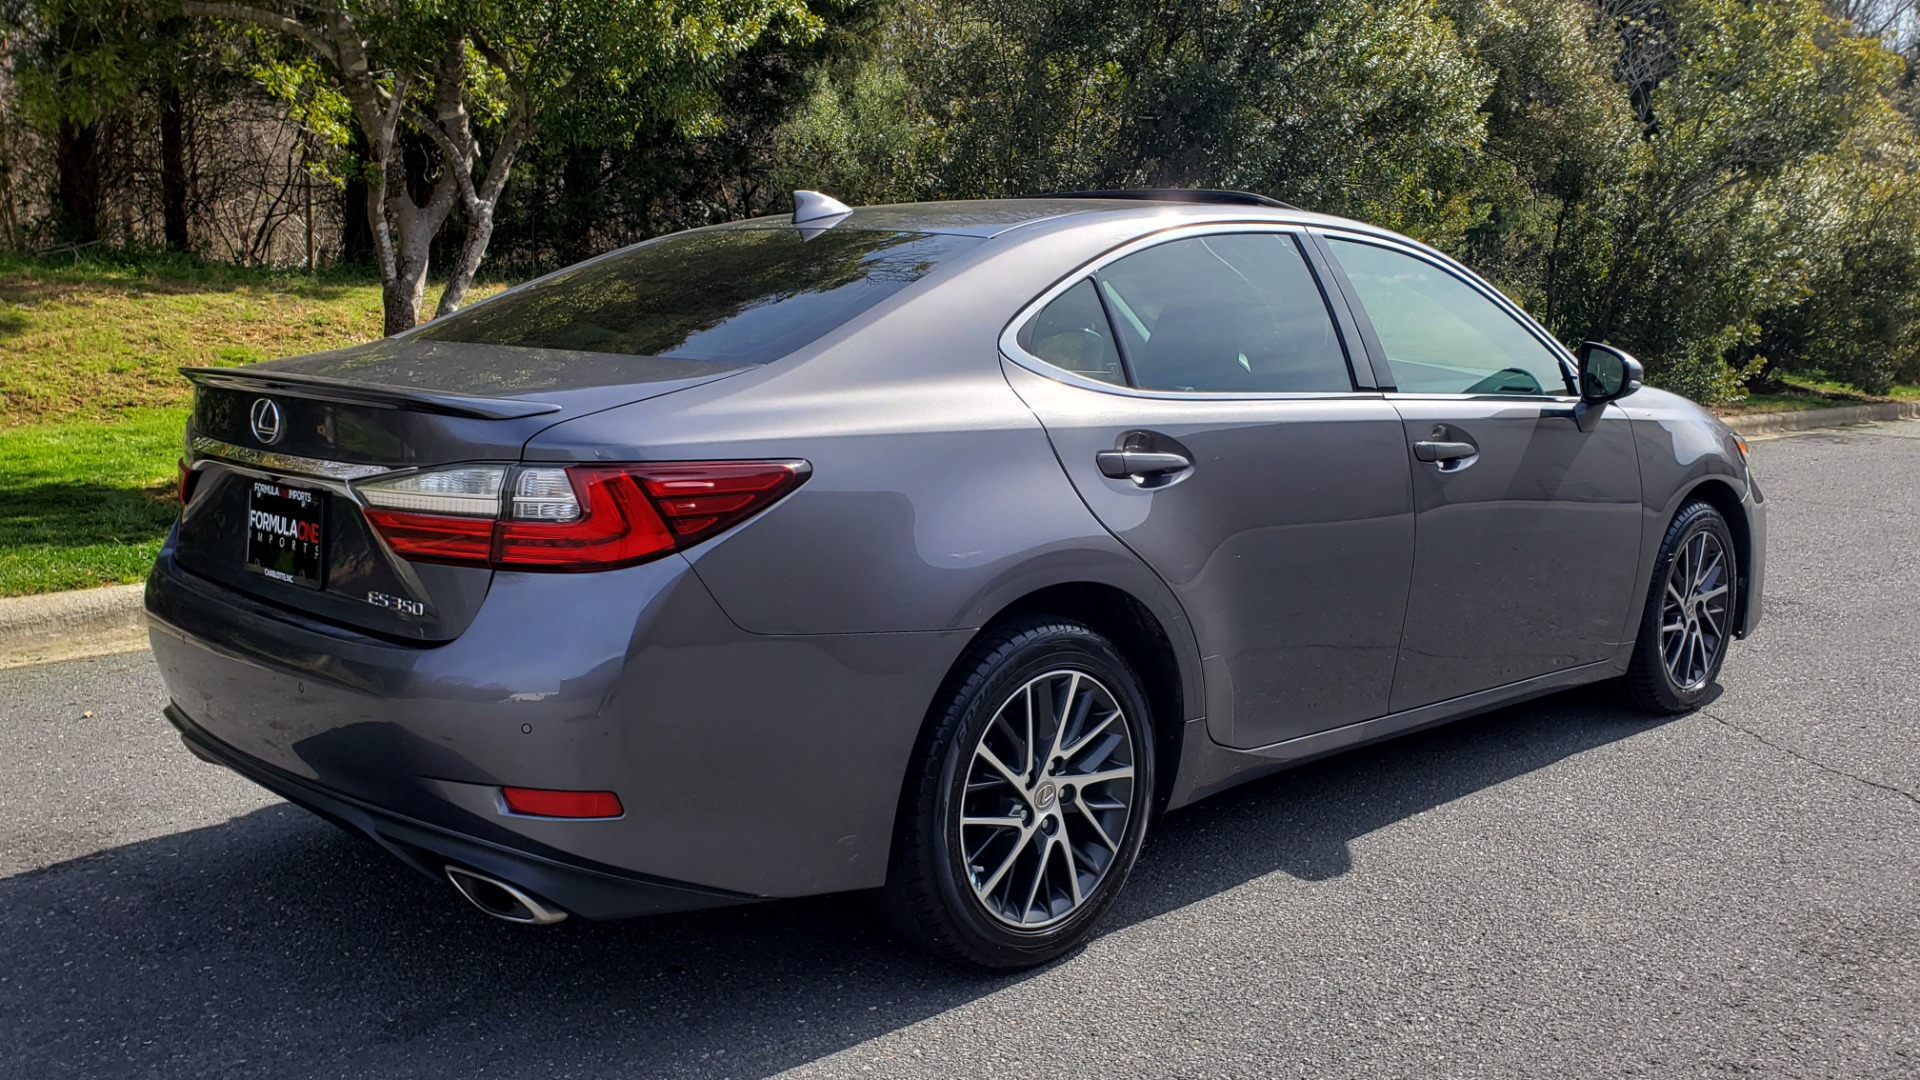 Used 2016 Lexus ES 350 4-DR PREMIUM / SUNROOF / BSM / REARVIEW / VENT STS for sale Sold at Formula Imports in Charlotte NC 28227 6